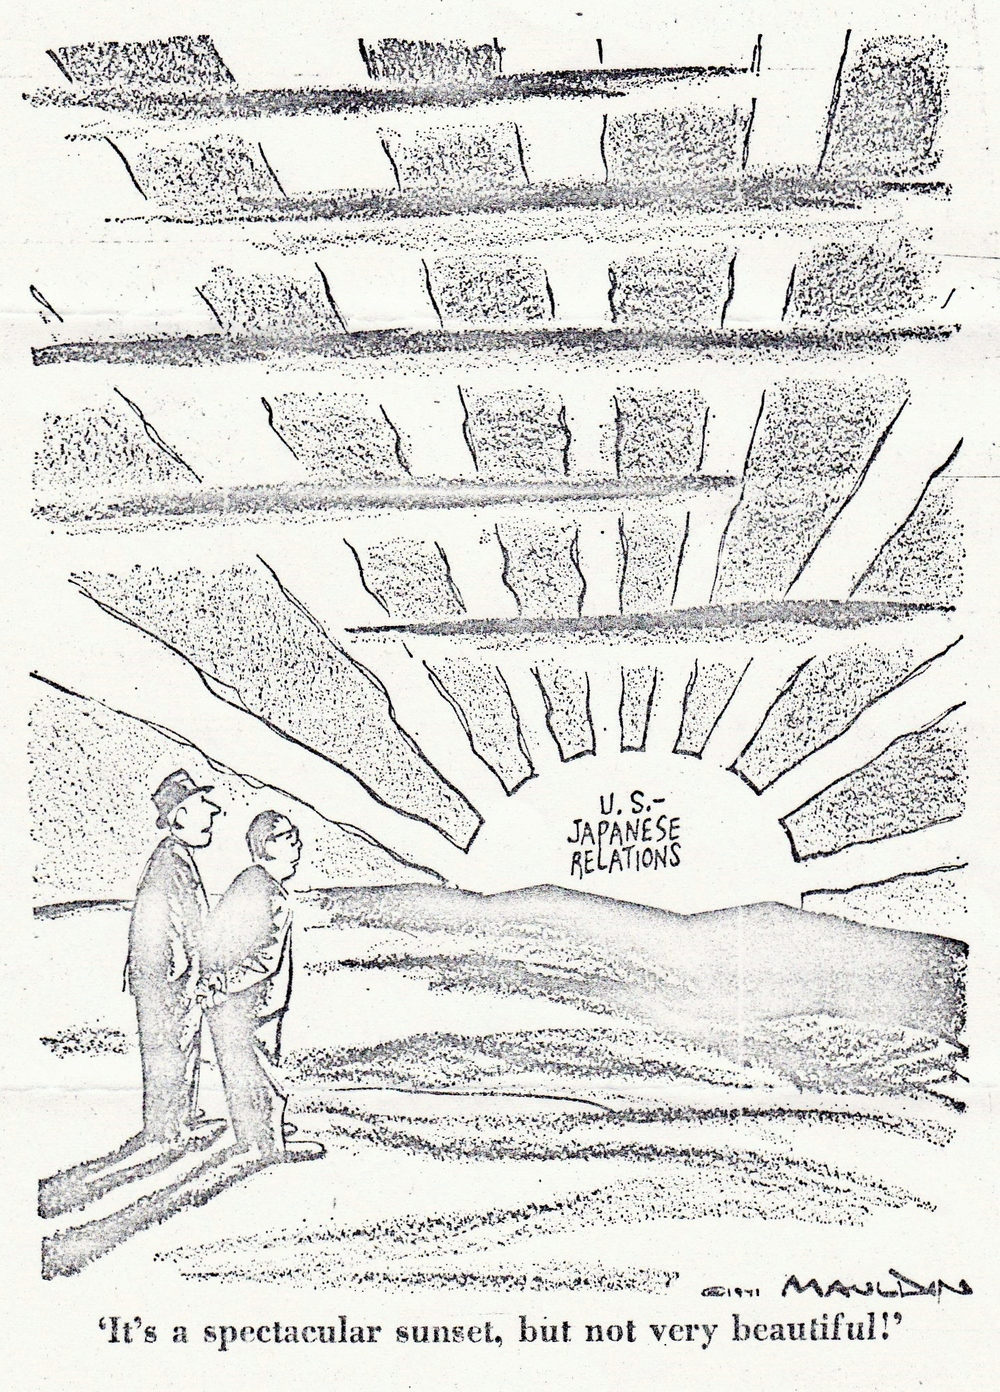 August 1971 Political cartoon